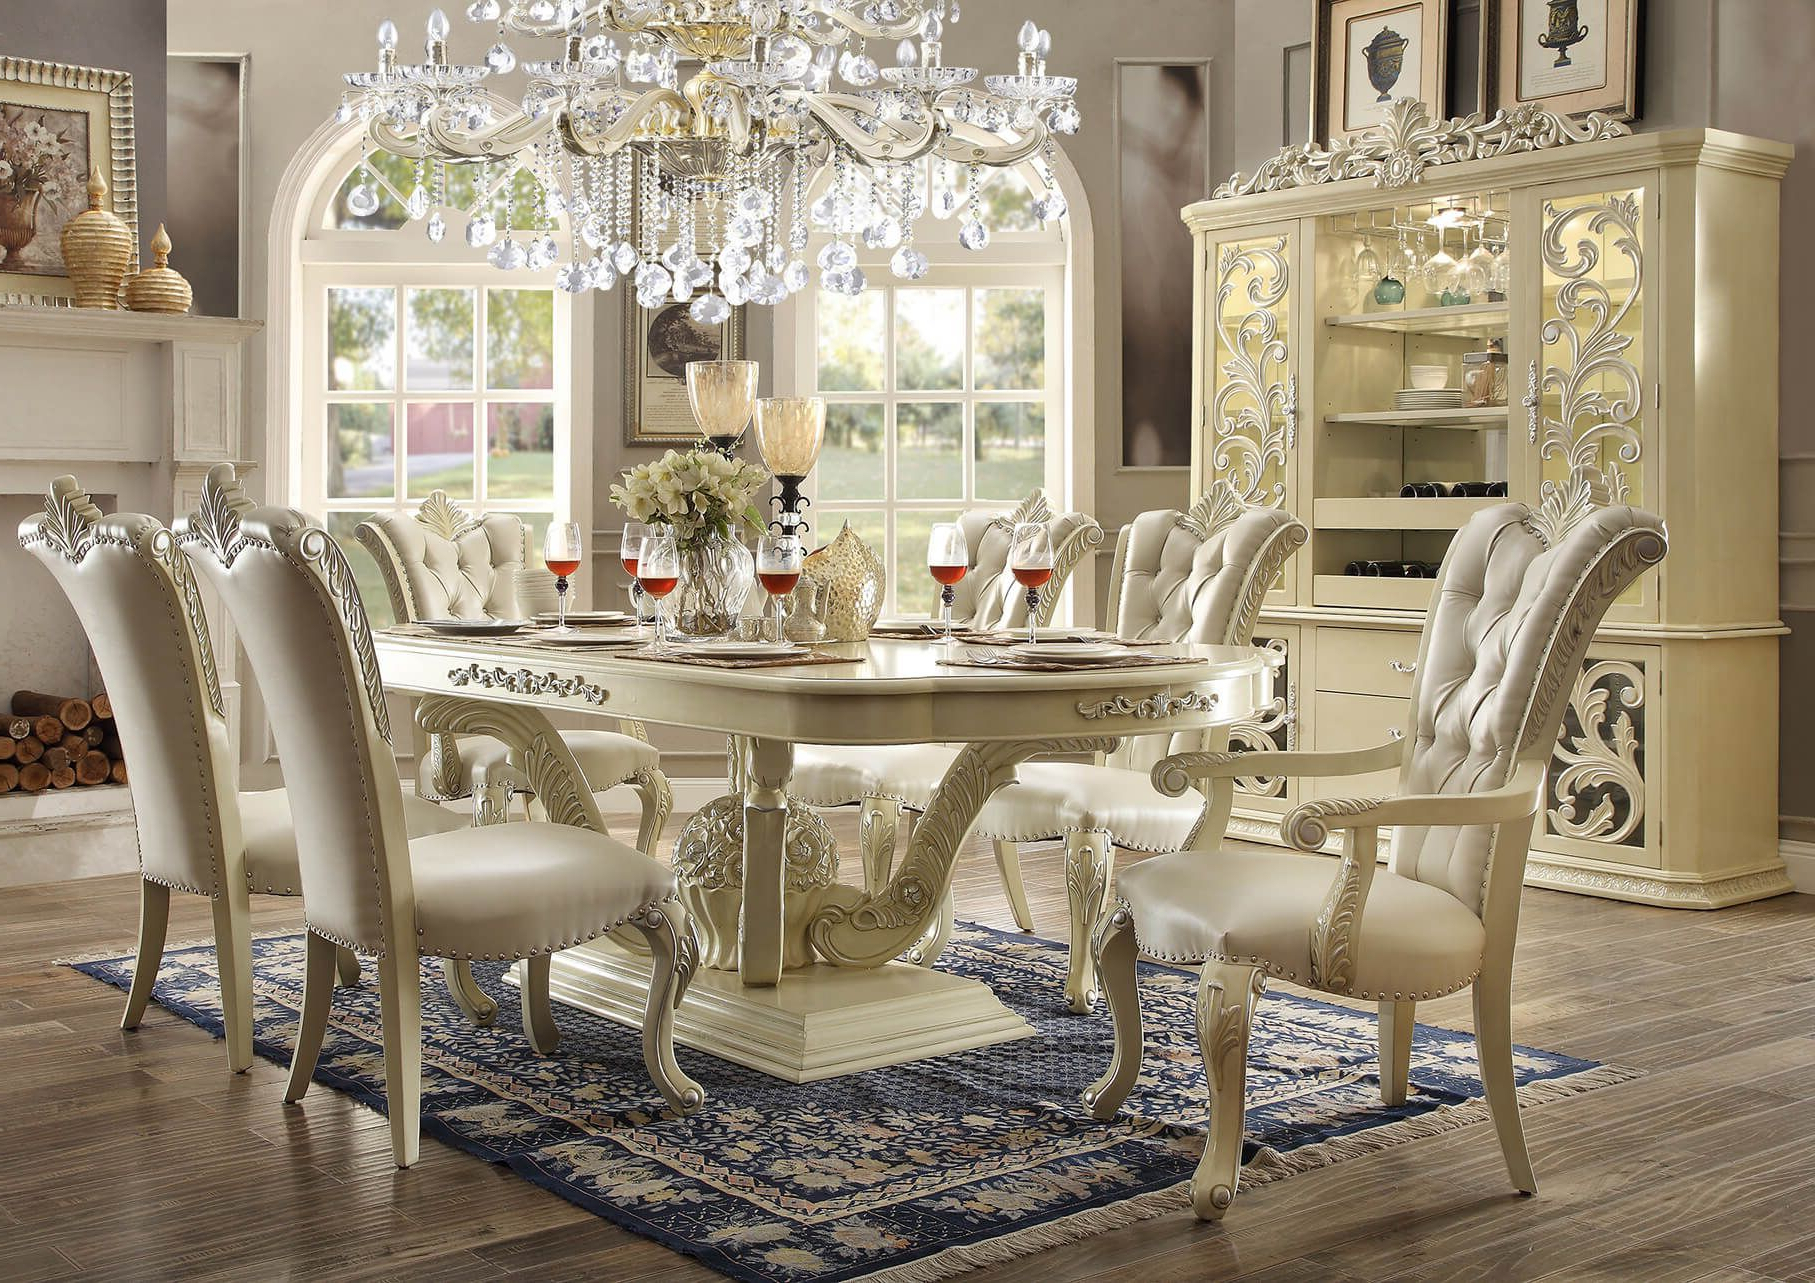 Chelmsford 3 Piece Dining Sets In Famous 9 Piece Homey Design Marbella Hd 27 Dining Set In  (View 2 of 25)